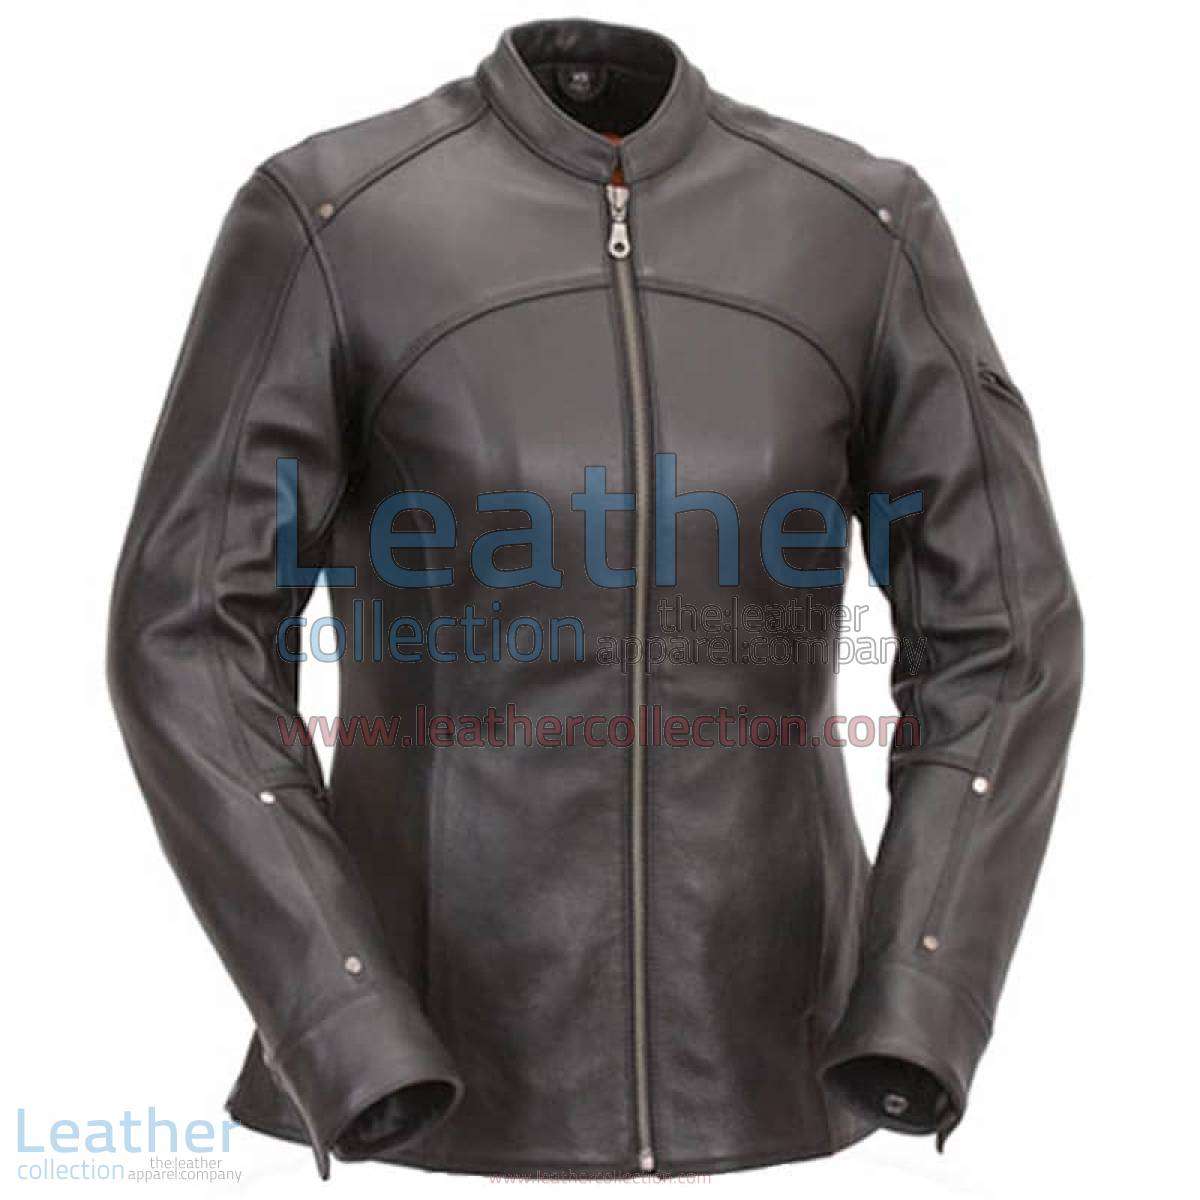 3/4 Length Touring Motorcycle Leather Jacket | 3/4 length leather jacket,3/4 length jacket